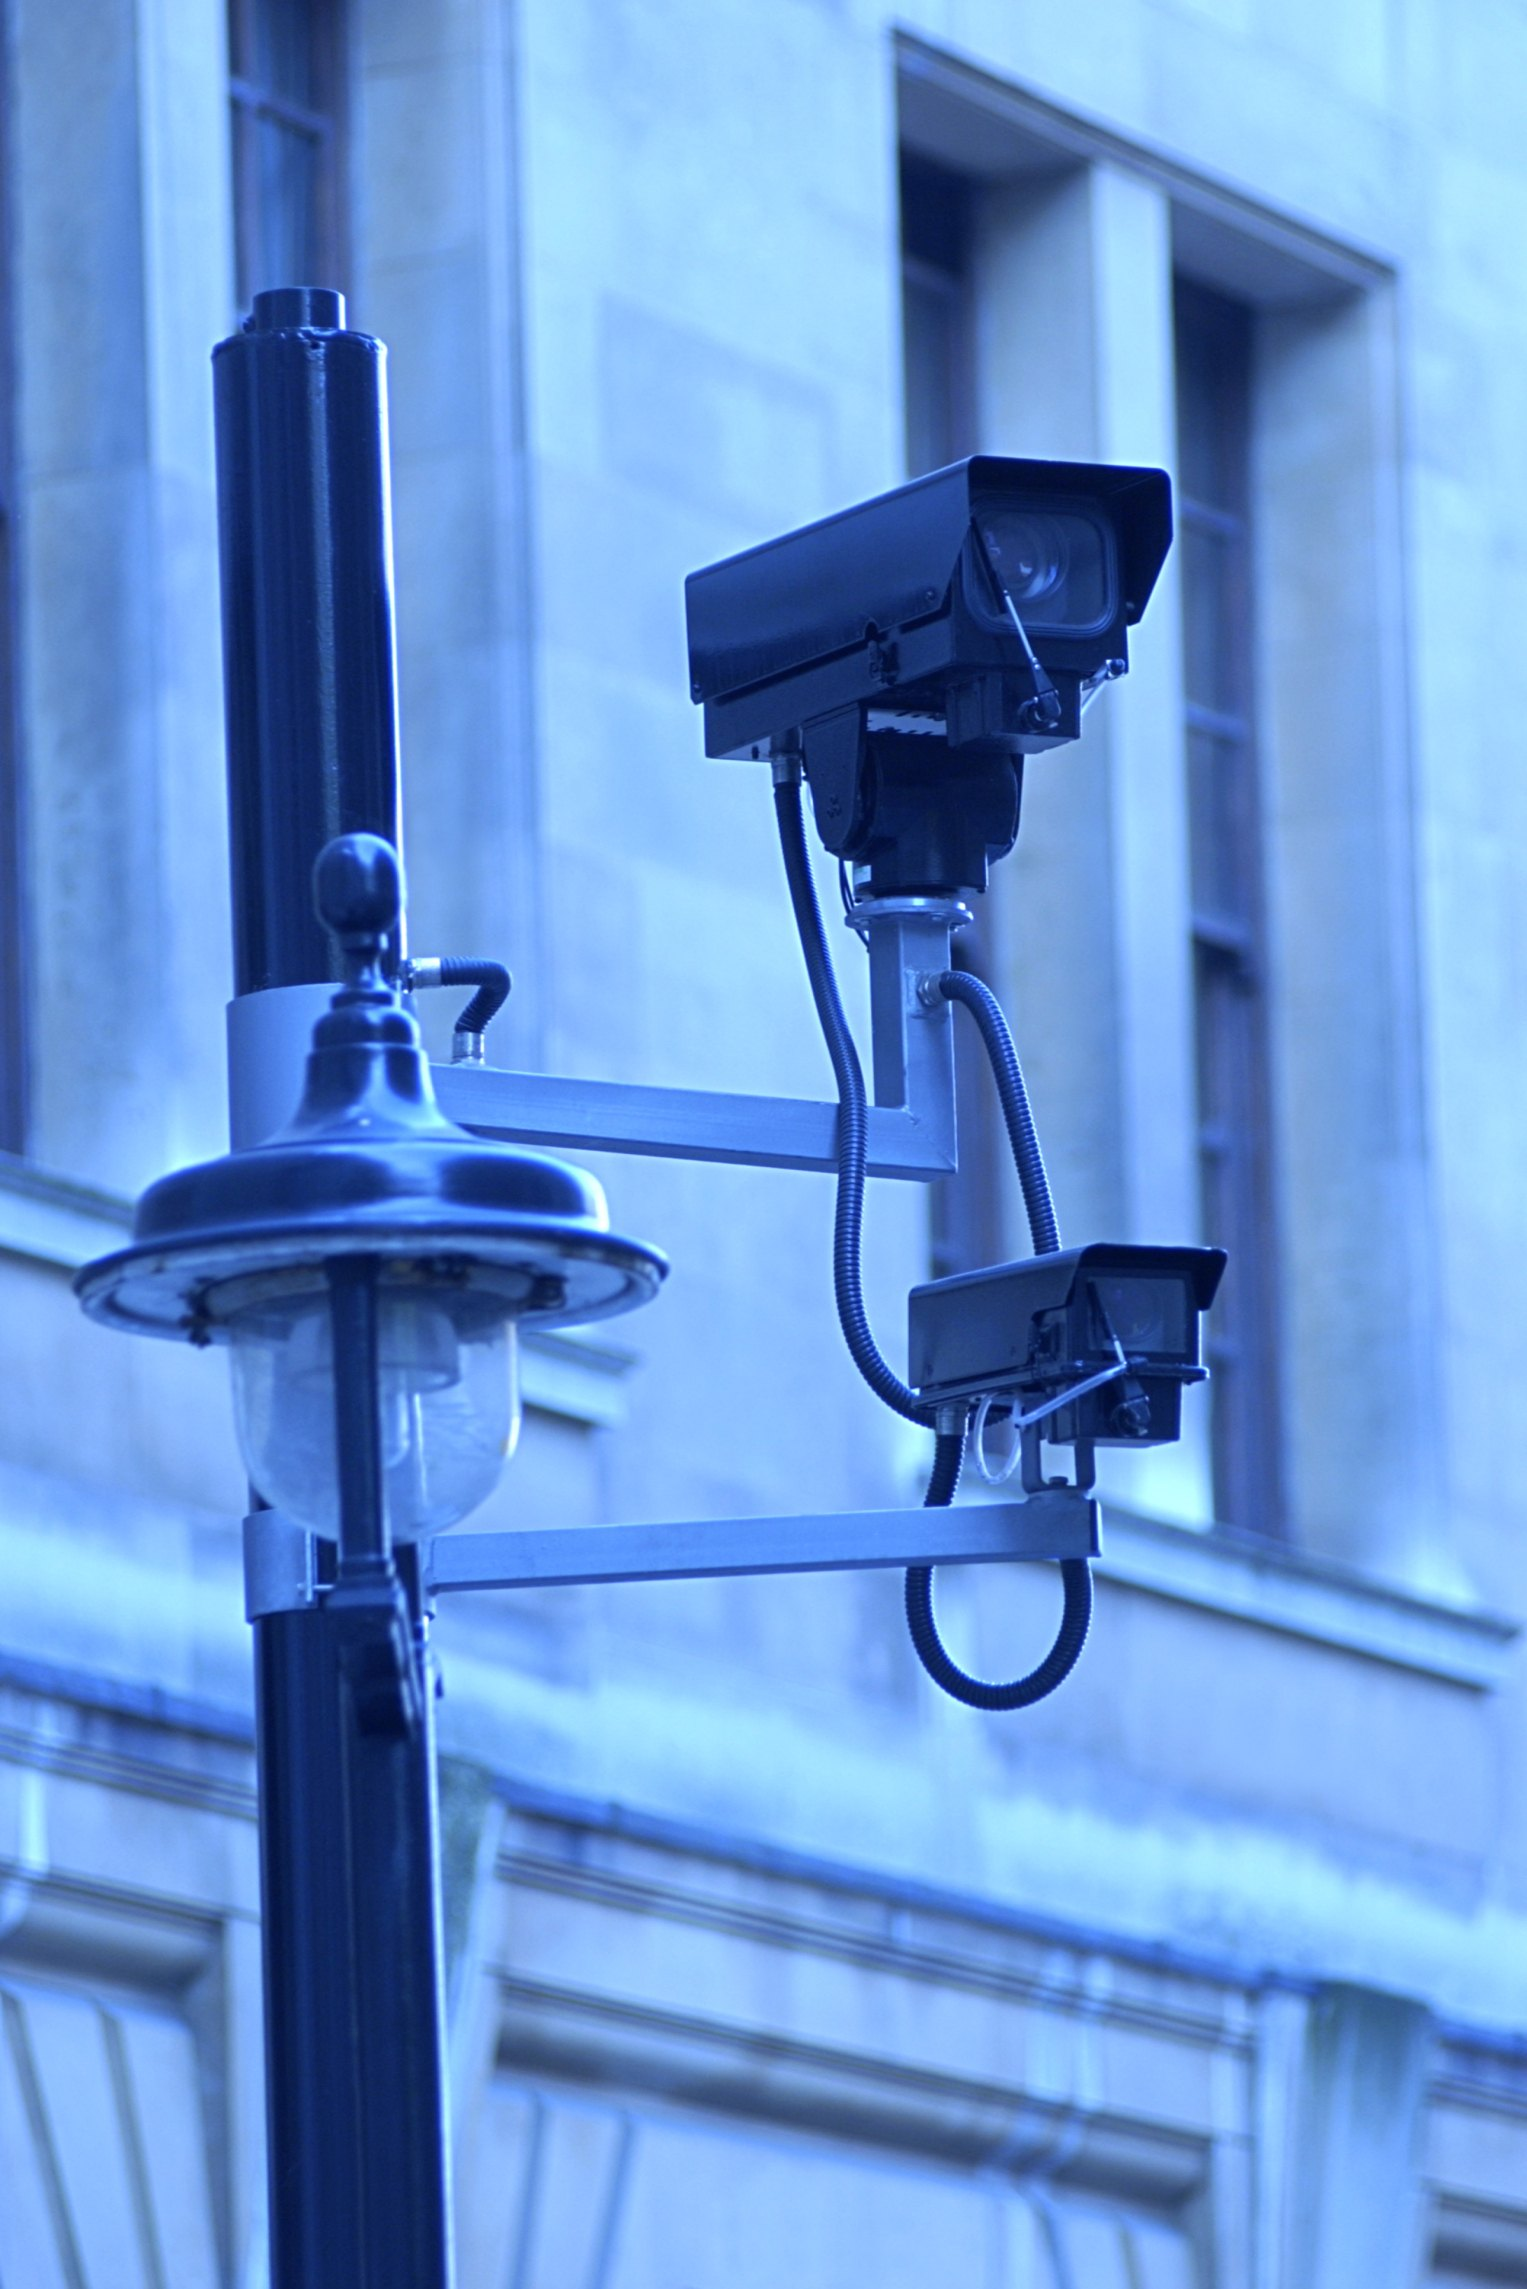 Security Light Photocell Problems | EHow